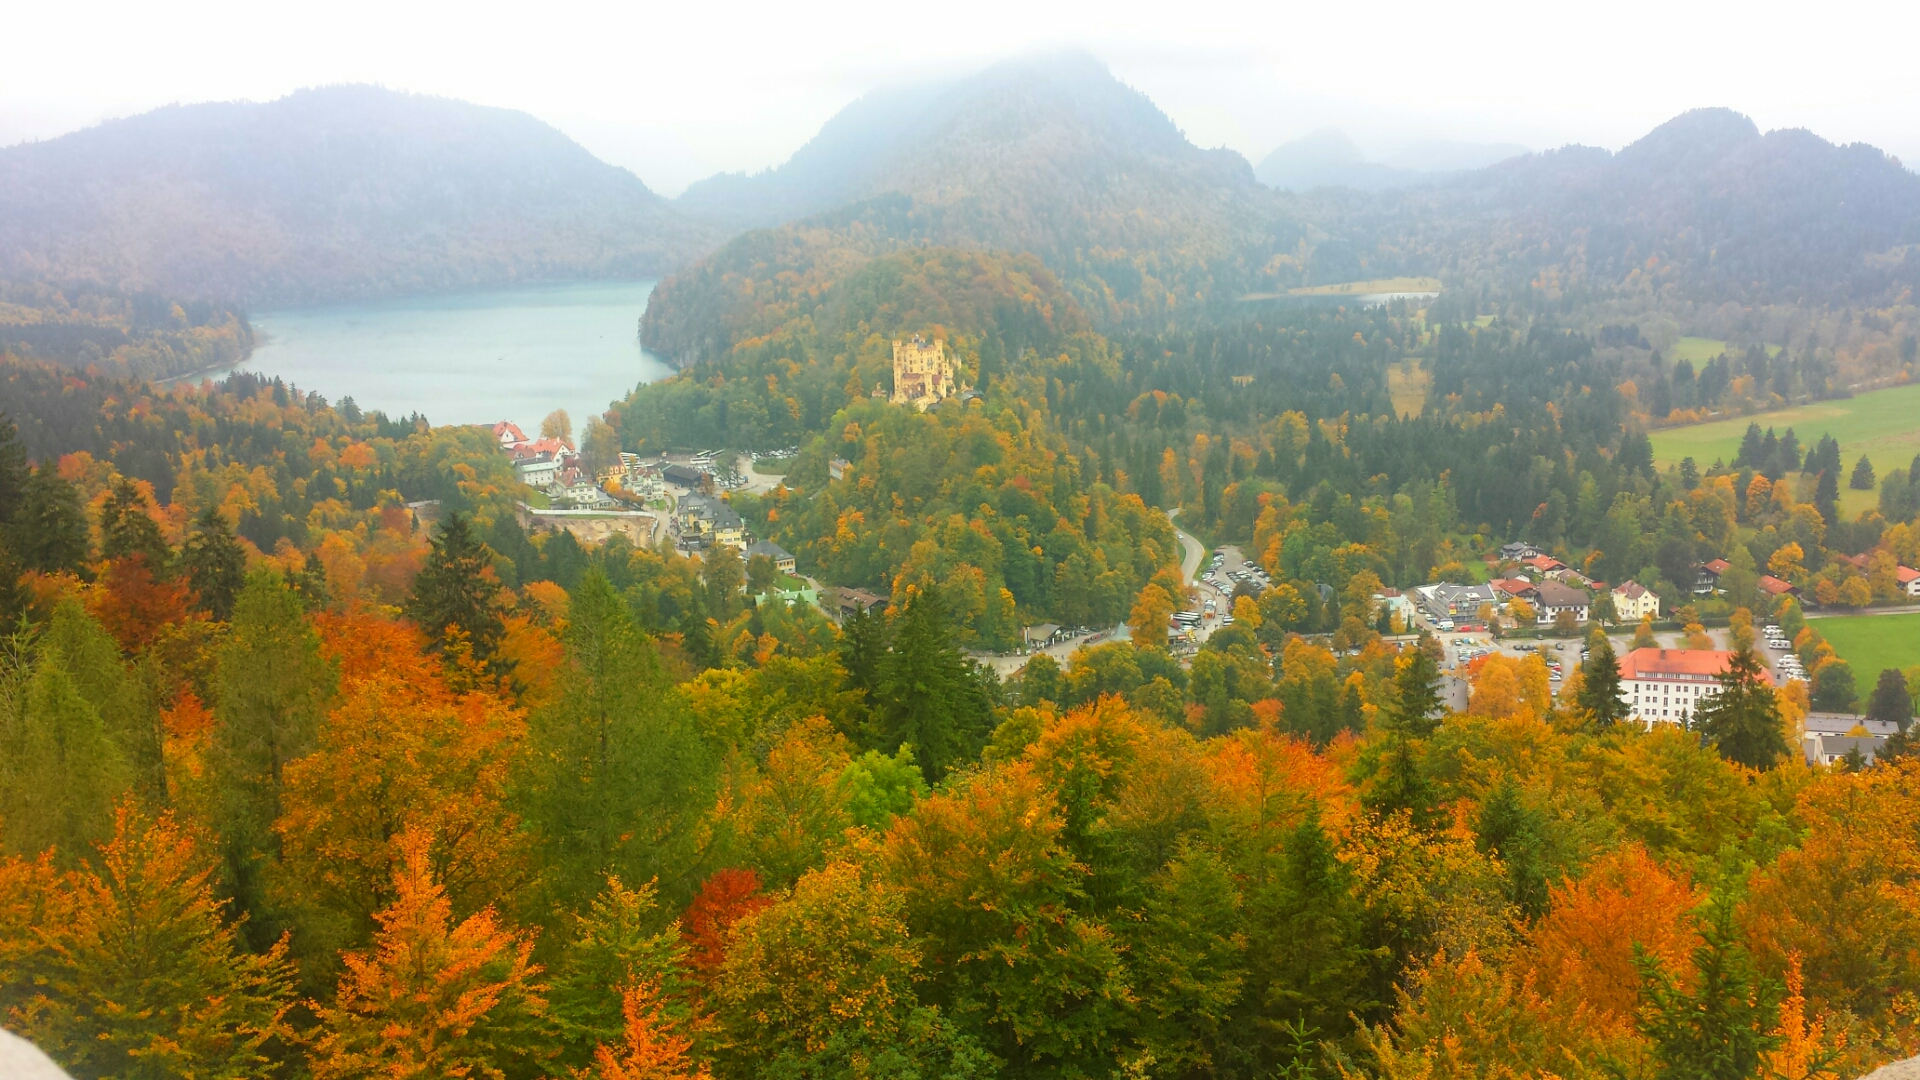 Autumn_At_Neuschwanstein_Castle_Germany